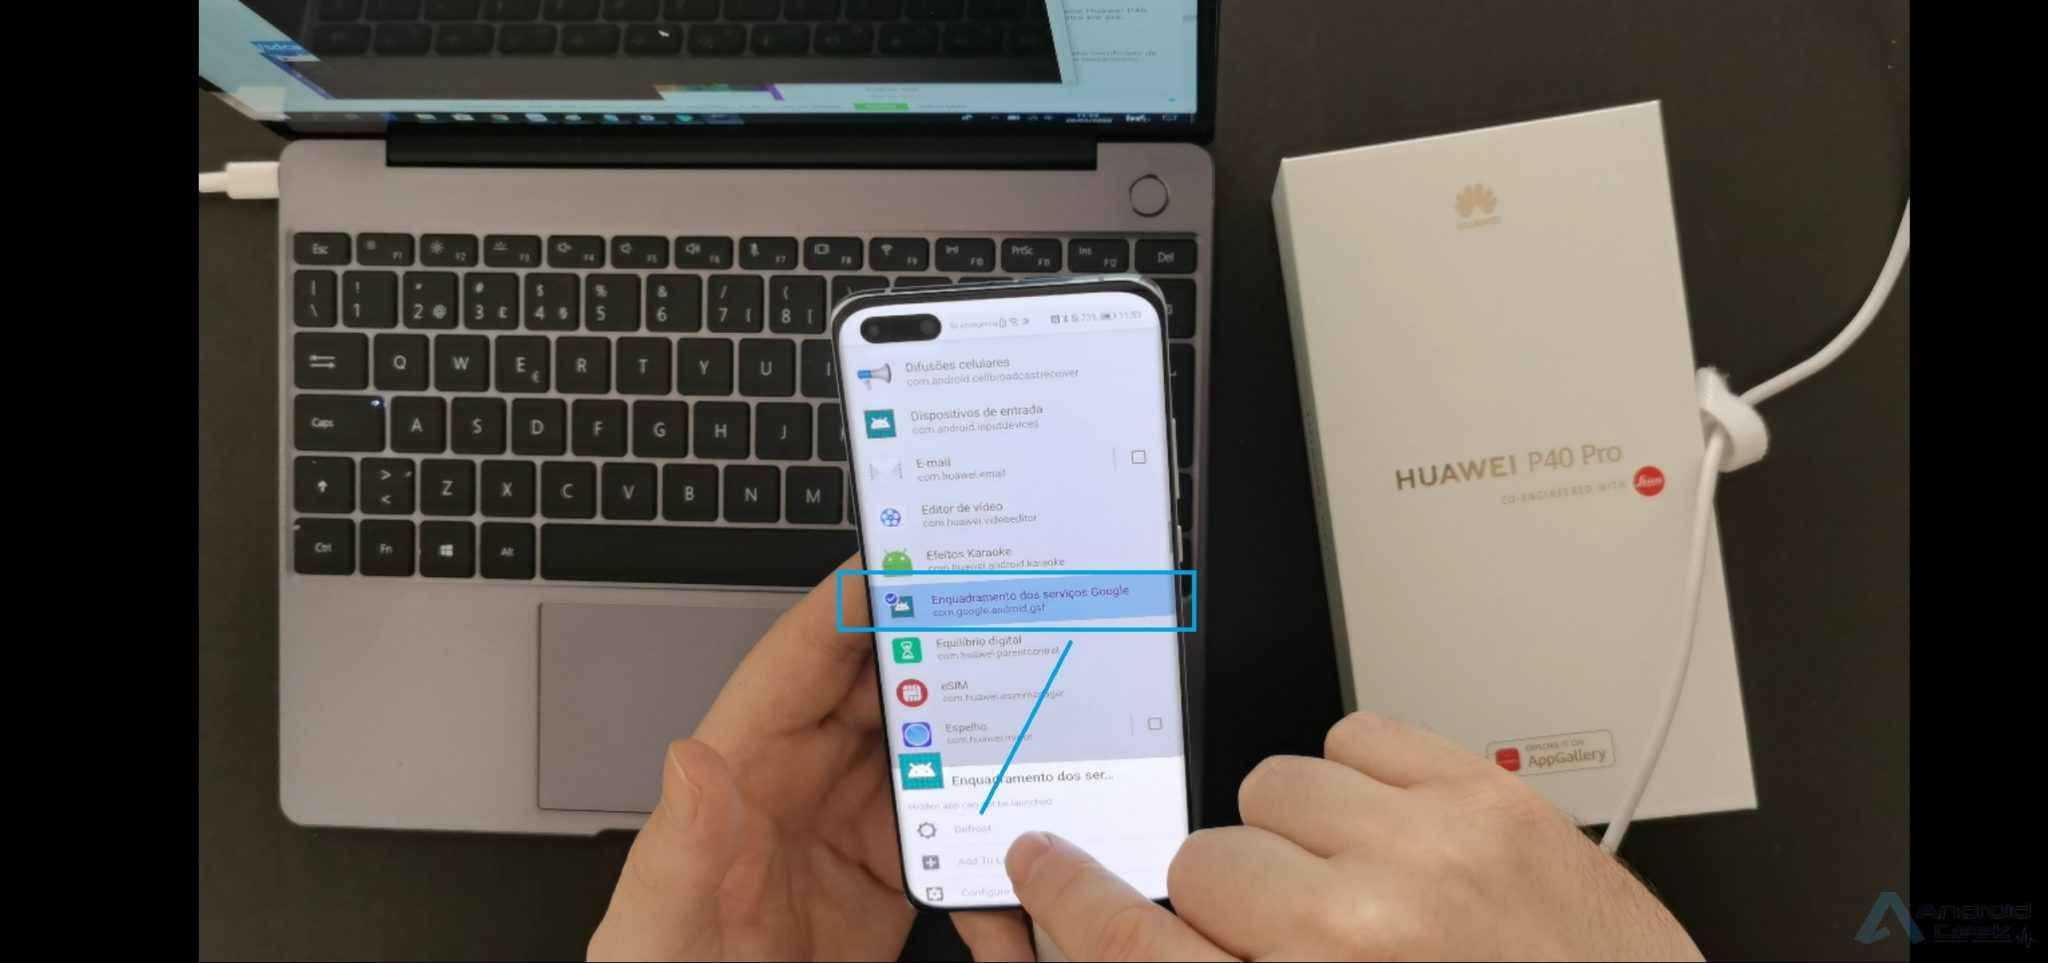 How to add a Google account to Huawei P40 Pro after installing GMS? 9